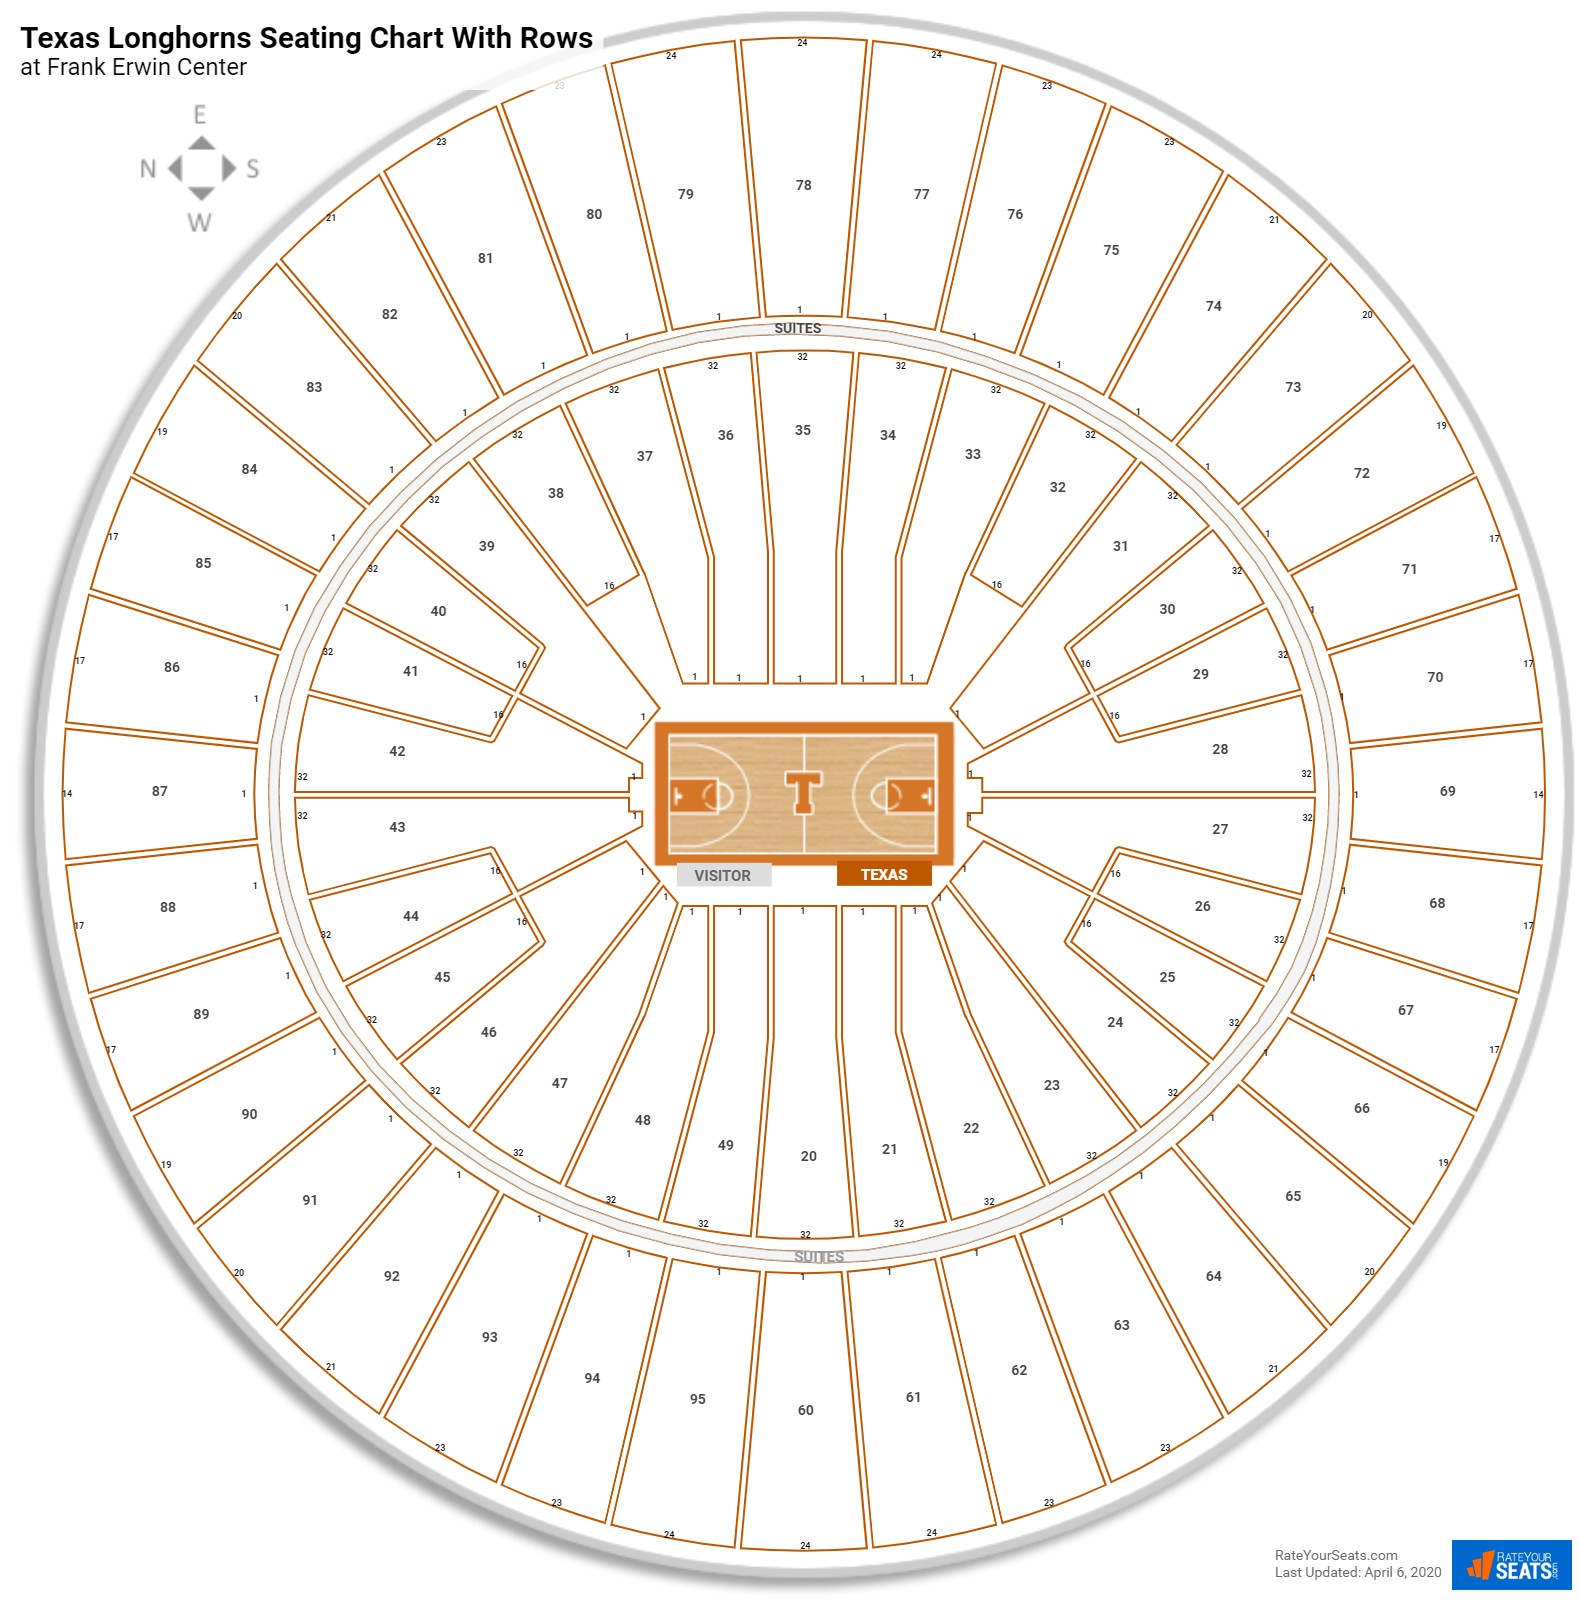 Frank Erwin Center seating chart with rows basketball